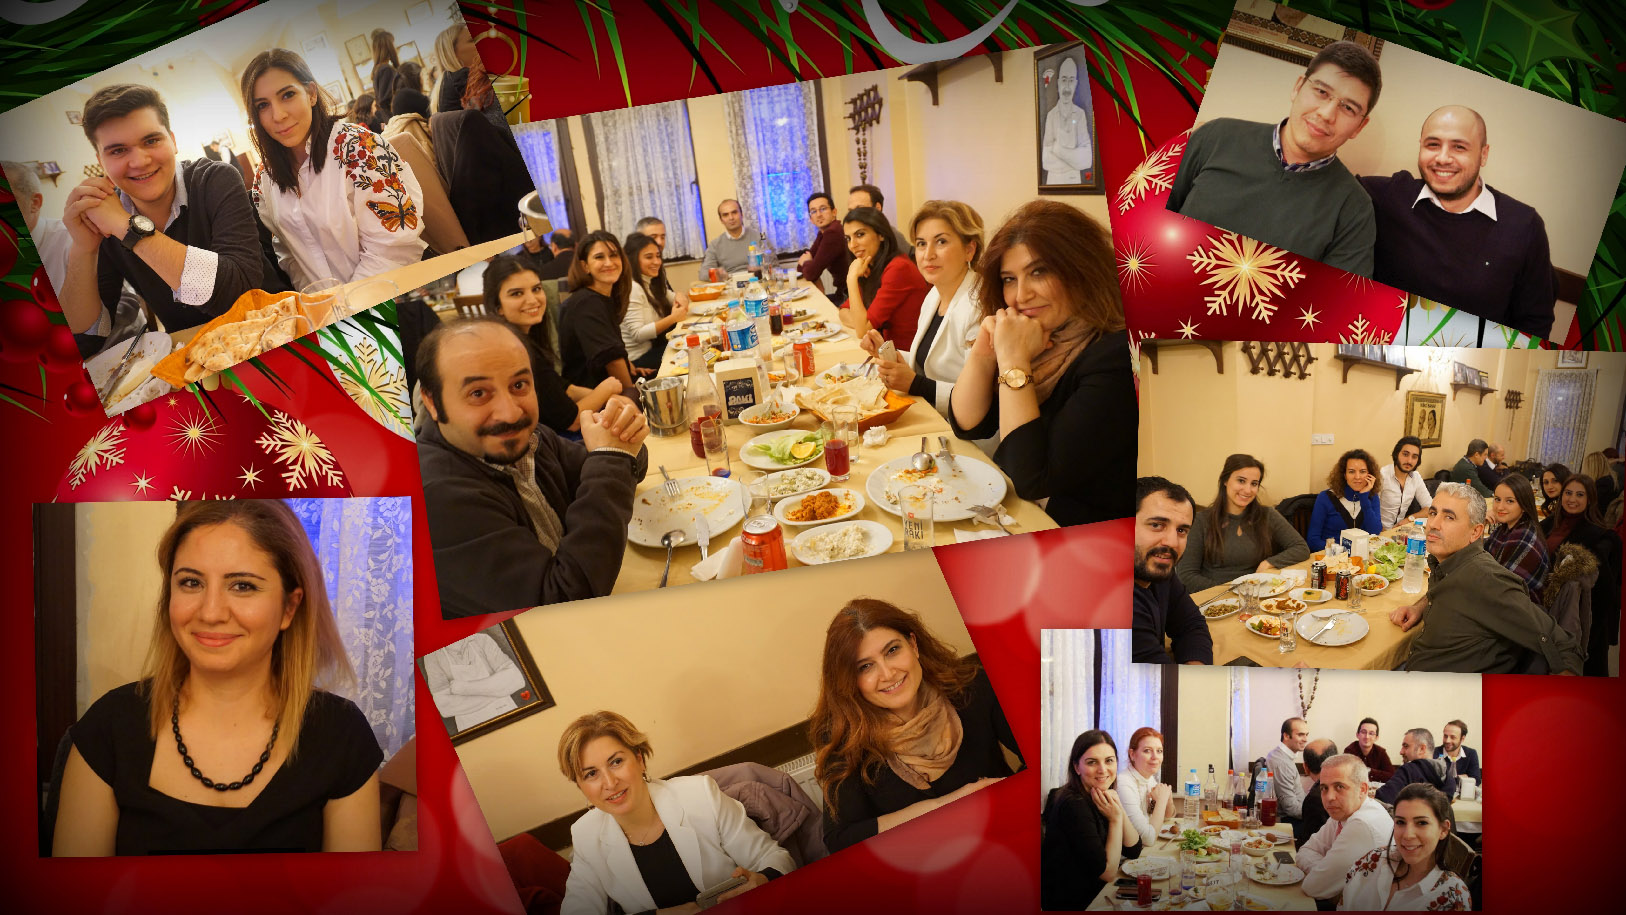 CottGroup celebrated the new years